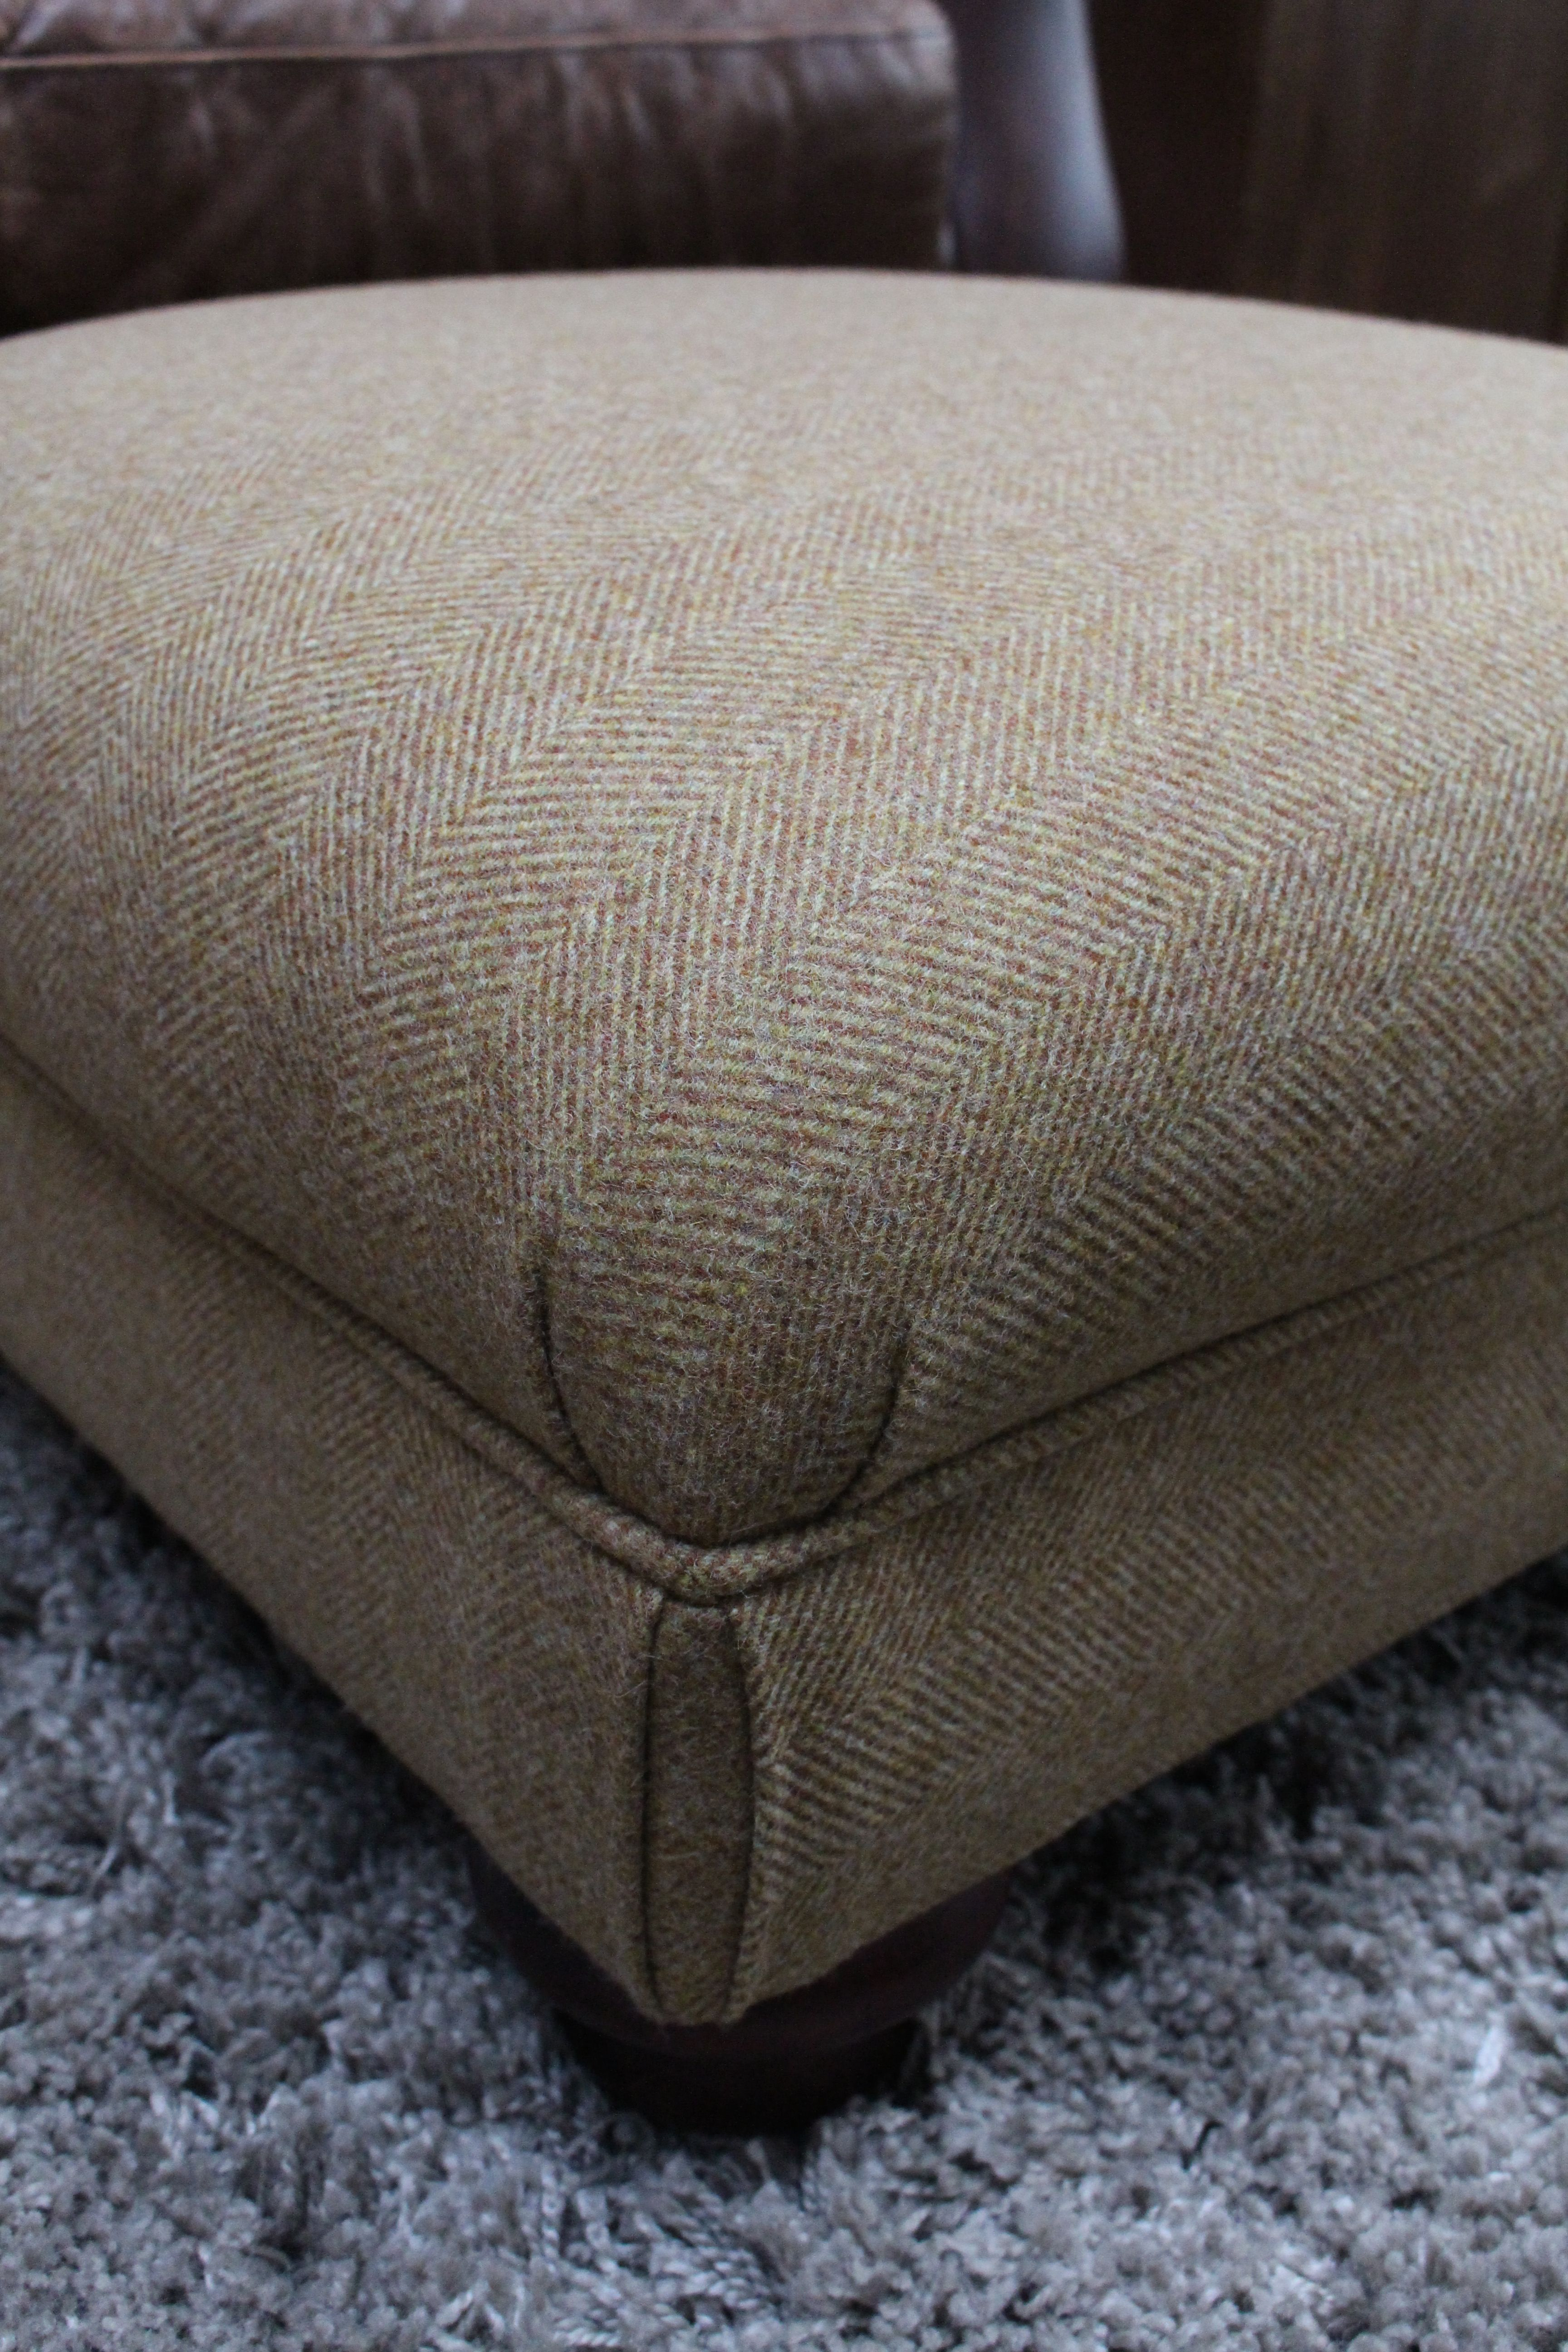 Reupholster Couch Diy Do It Yourself